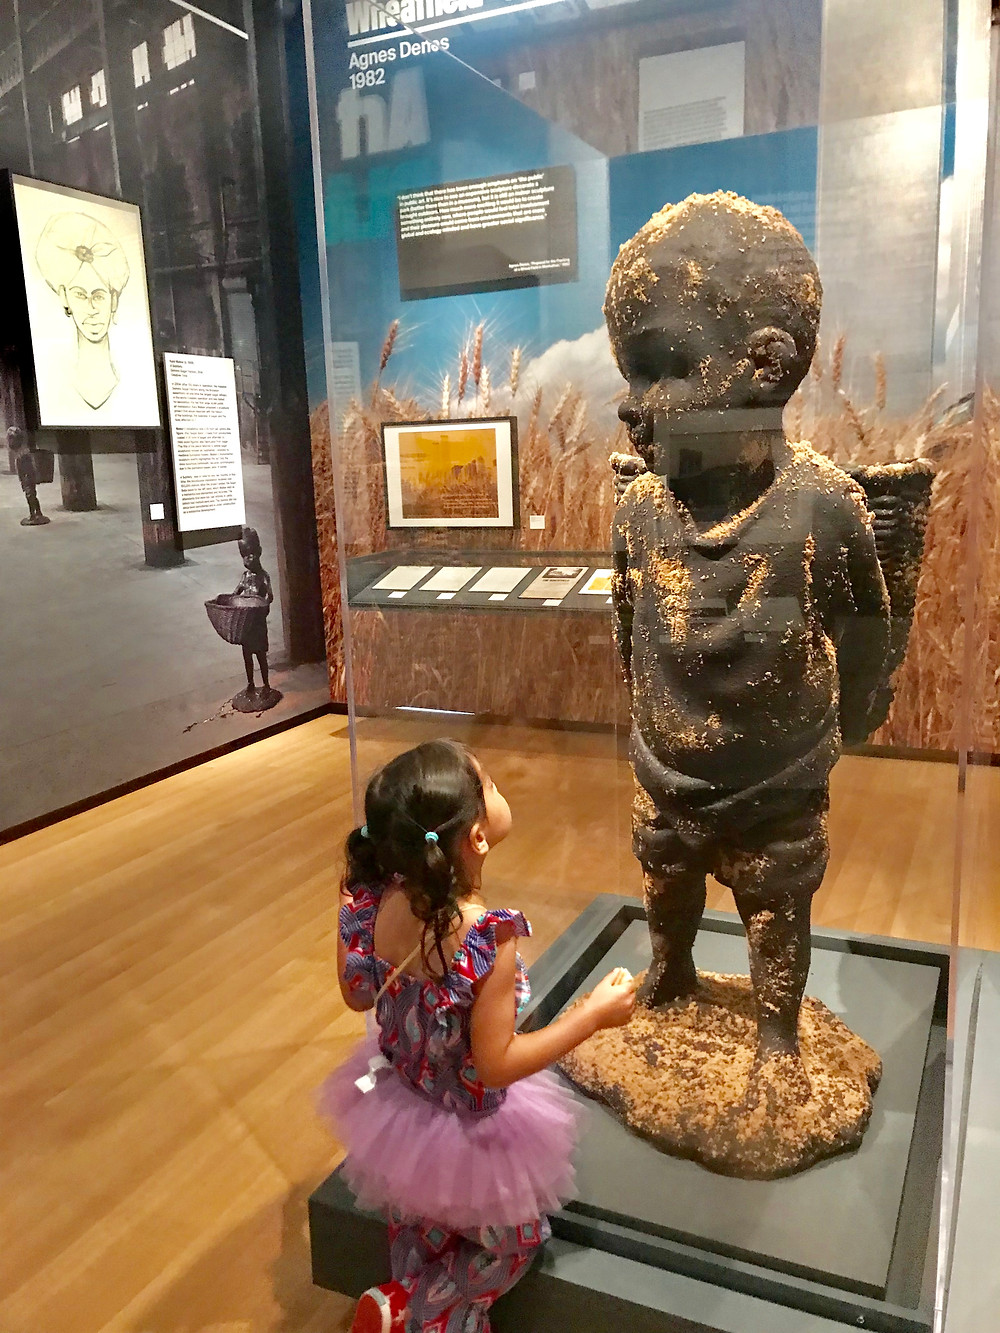 Museum of the City of New York, Interactive Mural, Things to do in NYC with kids, best nyc museums, curious g and me, kara walker, the Marvelous Sugar Baby